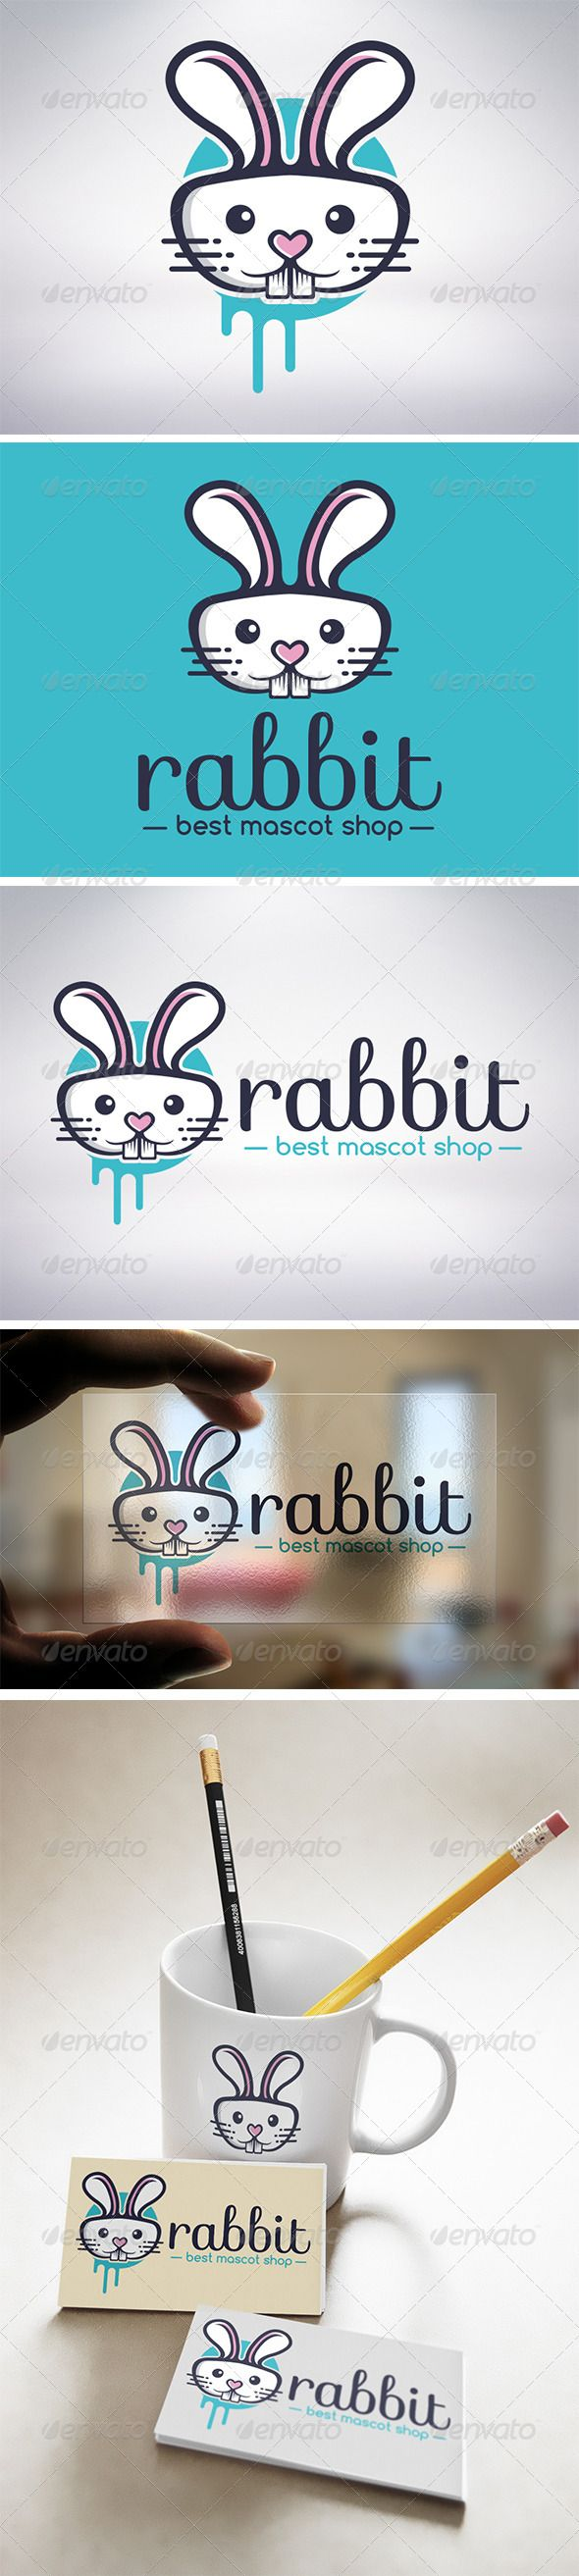 Rabbit Logo #GraphicRiver - Three color version: color, greyscale and sinsizable. - You can change te